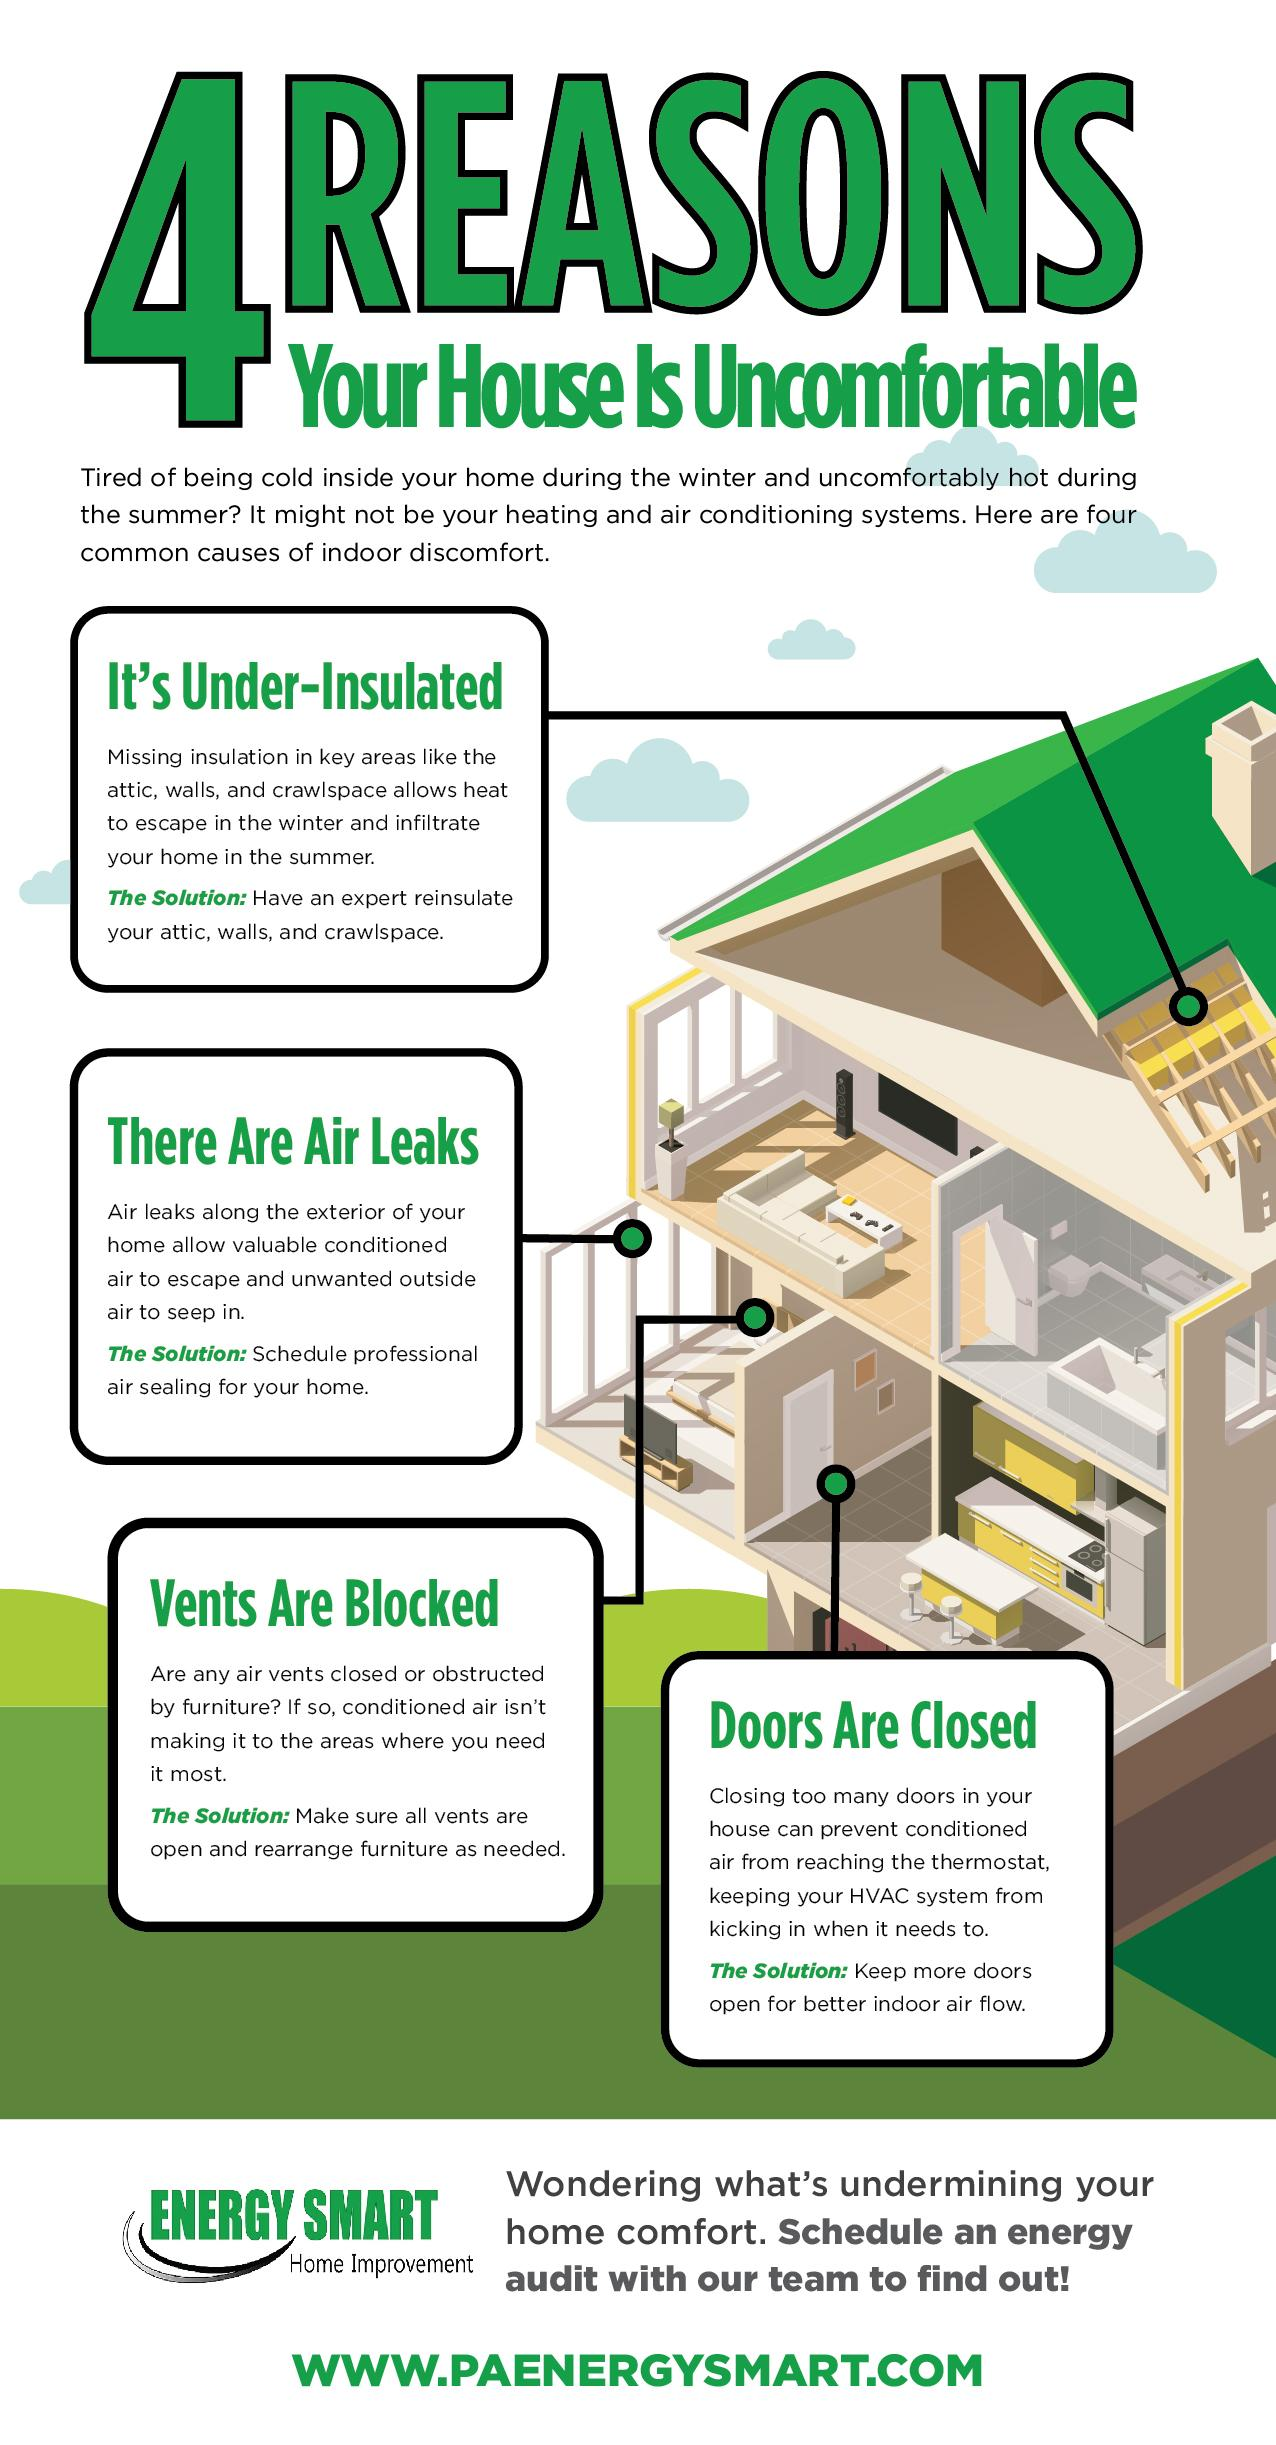 4 reasons your house is uncomfortable infographic energy smart home improvement